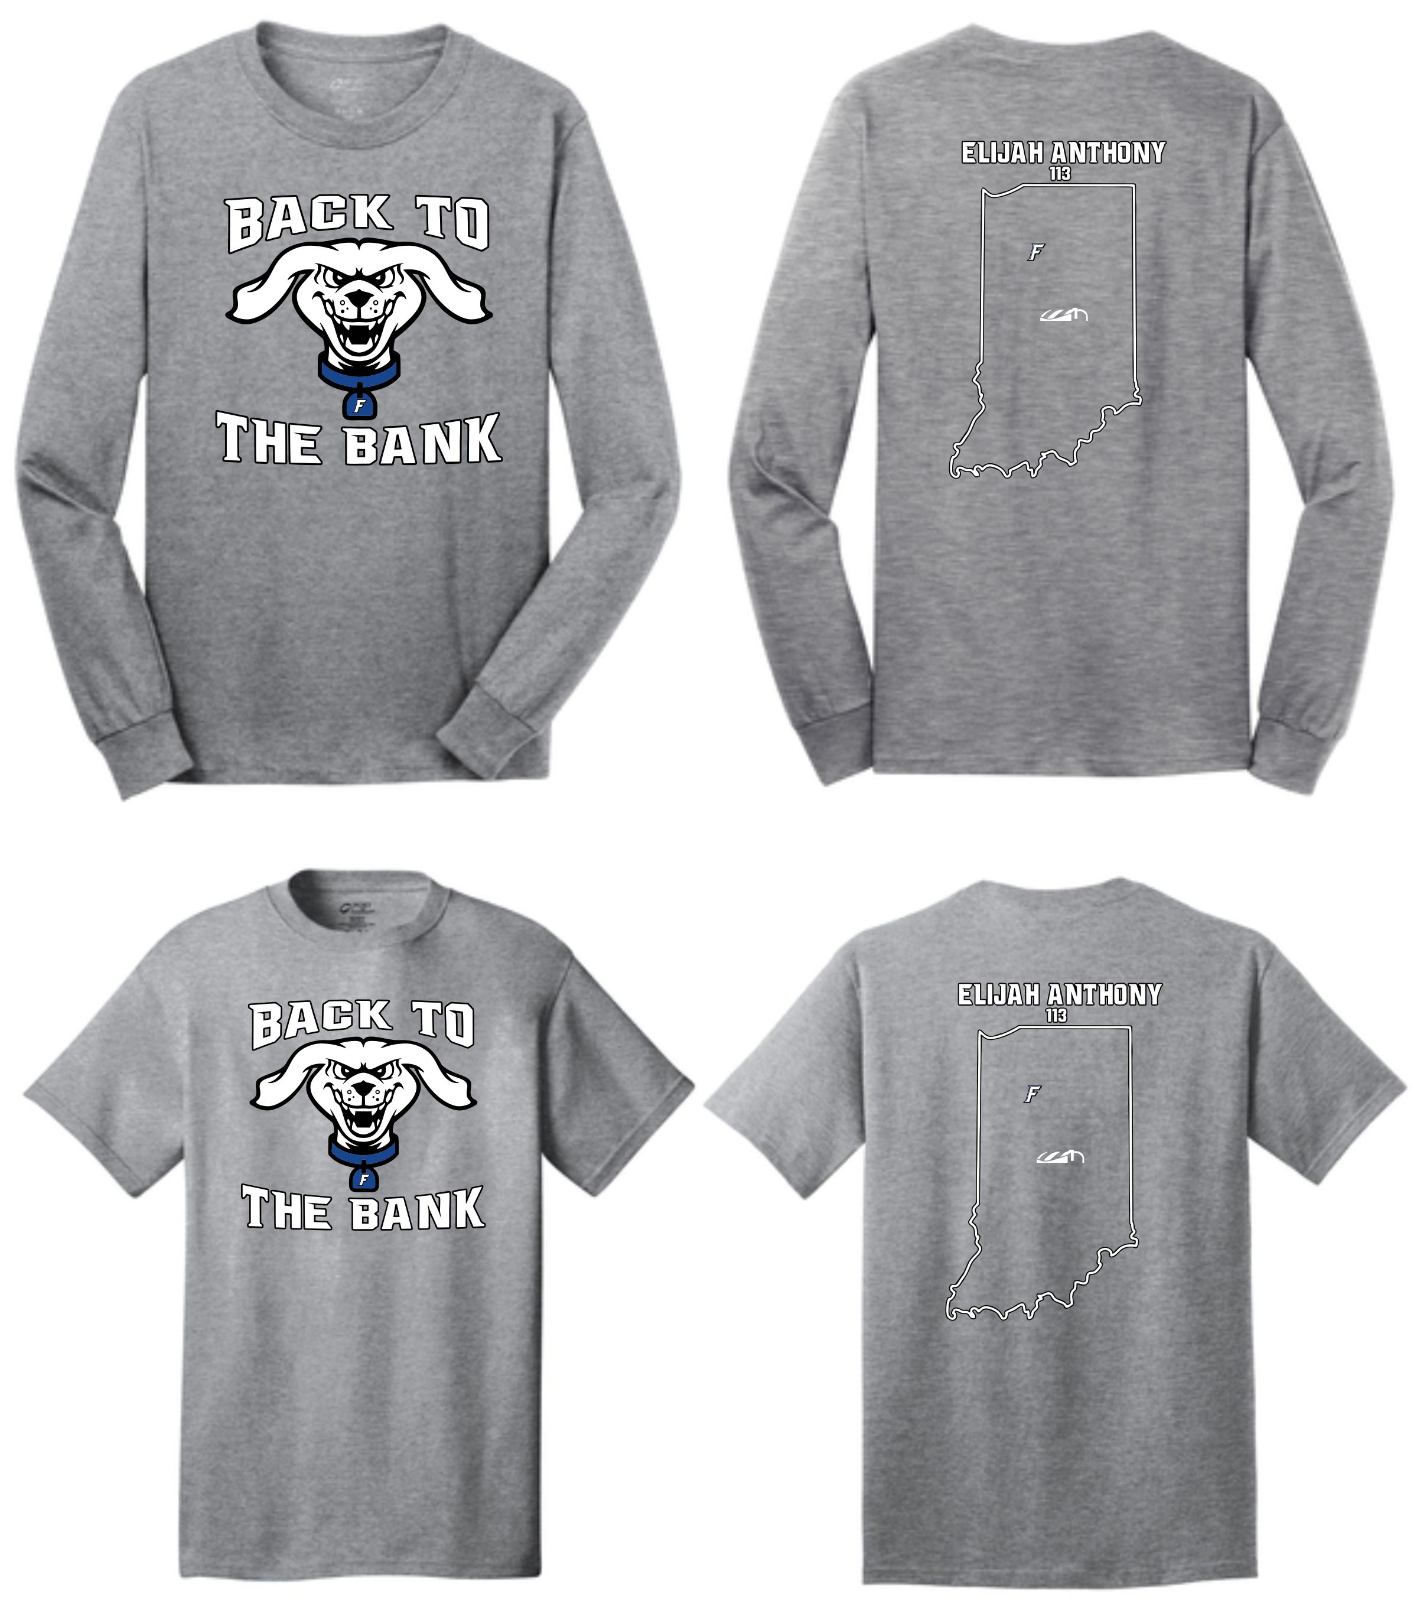 BACK TO THE BANK SHIRTS